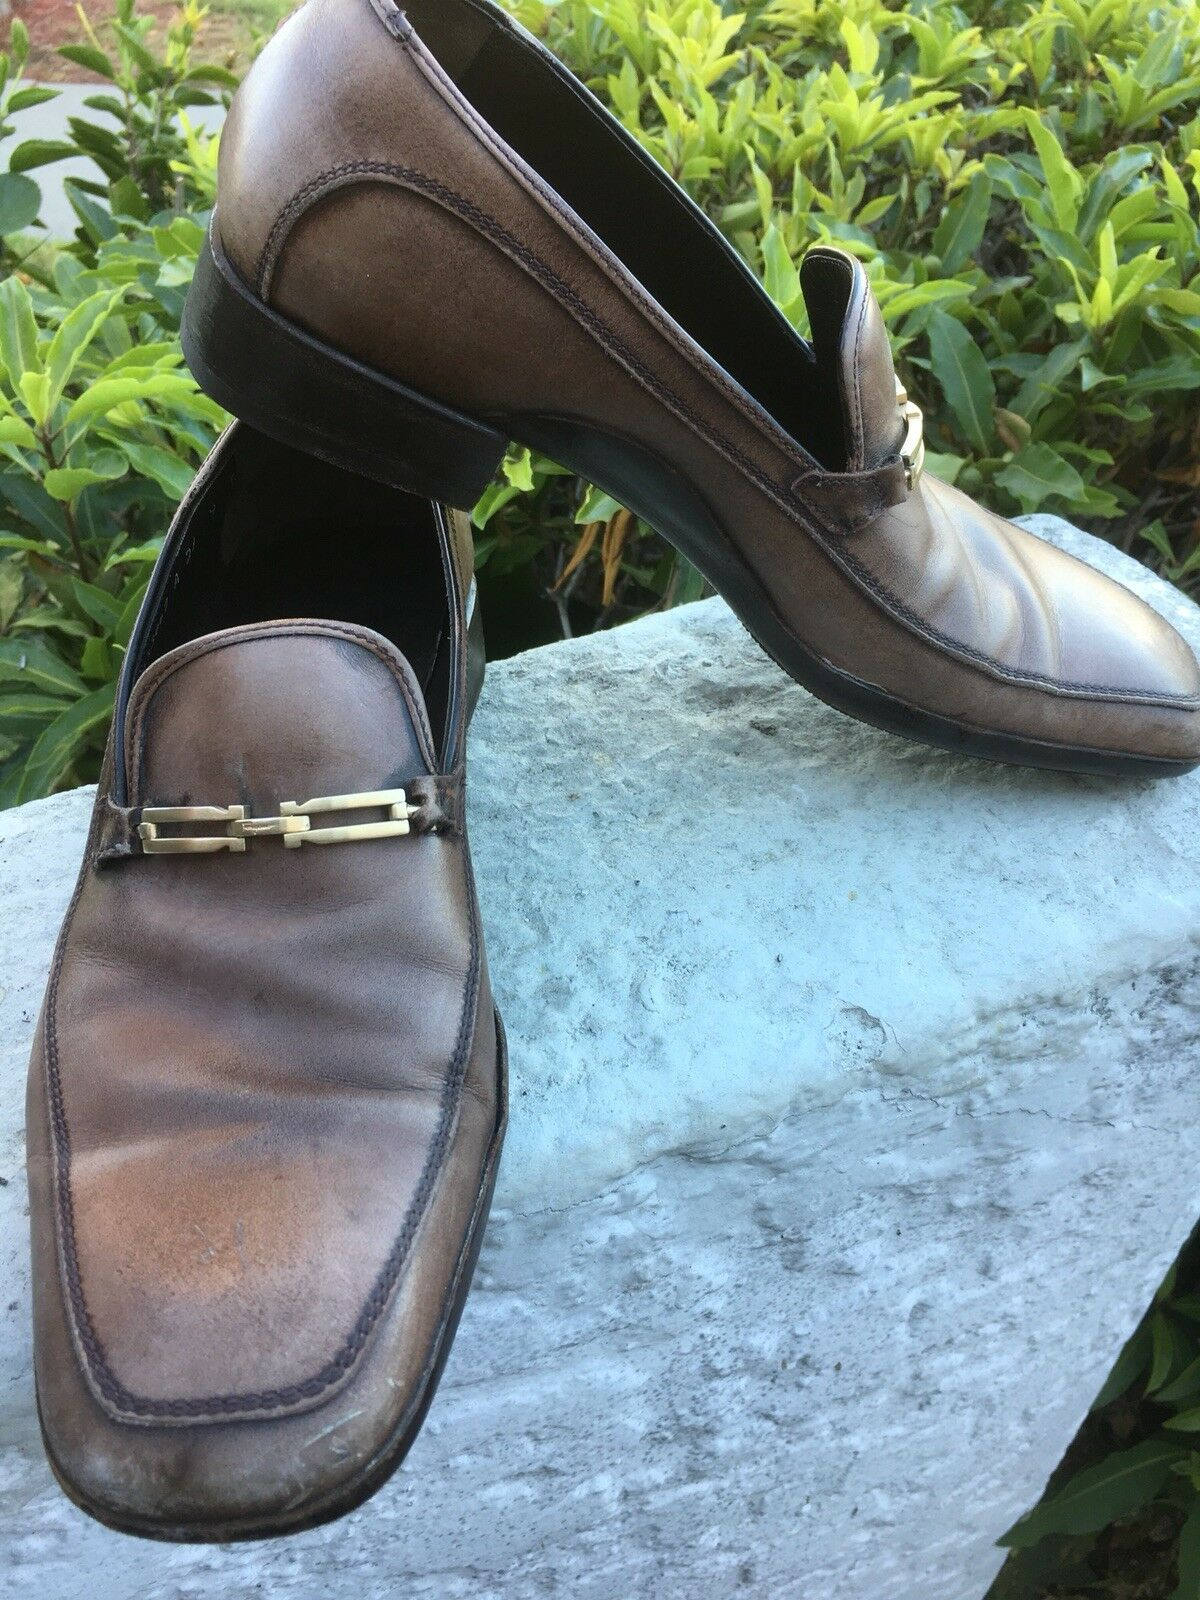 Ferragamo Brown Brown Ferragamo Buckle Loafers Size 9 c85d97